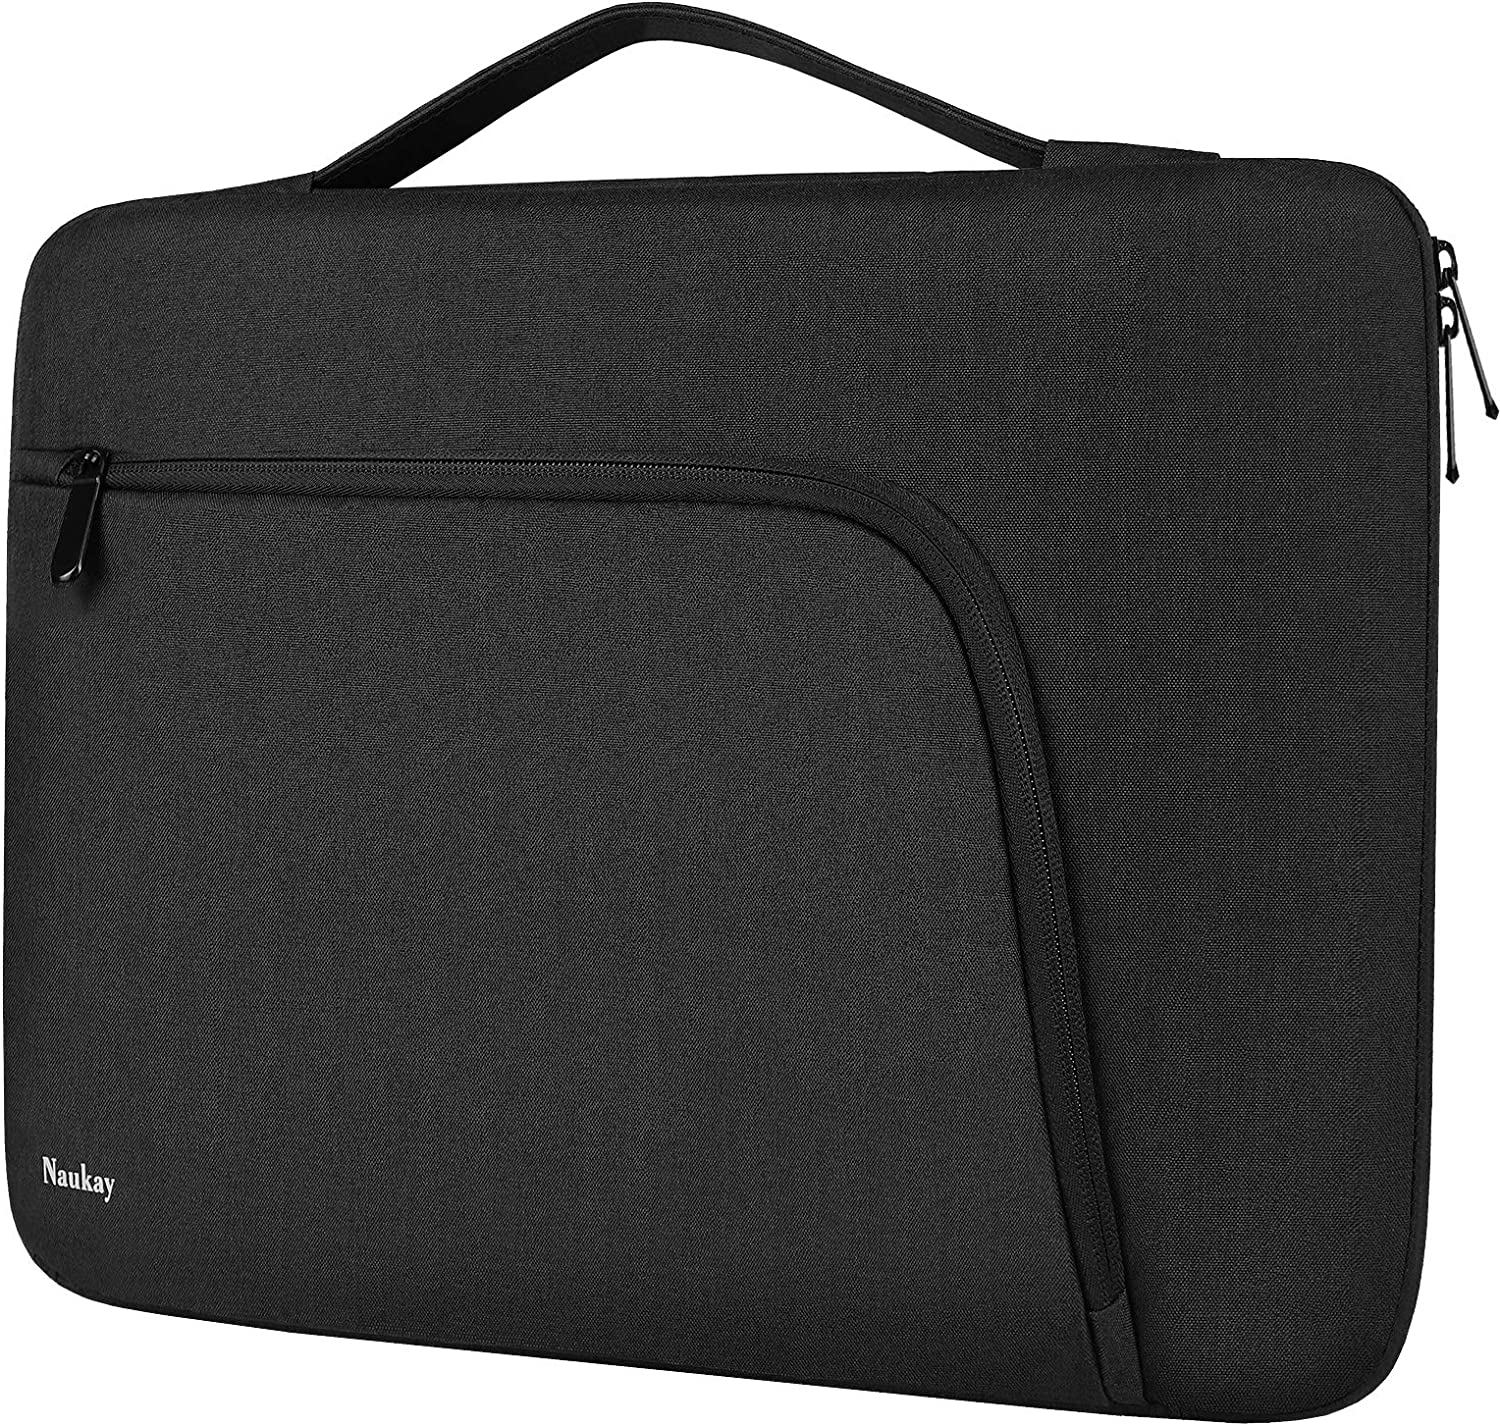 "15.6 Inch Laptop Sleeve Protective Case Compatible with MacBook Pro 15"" 15.6"" Dell Lenovo HP Asus Acer Sony Toshiba Chromebook Notebook Ultrabook, Water Resistant Briefcase Carrying Bag, Black"